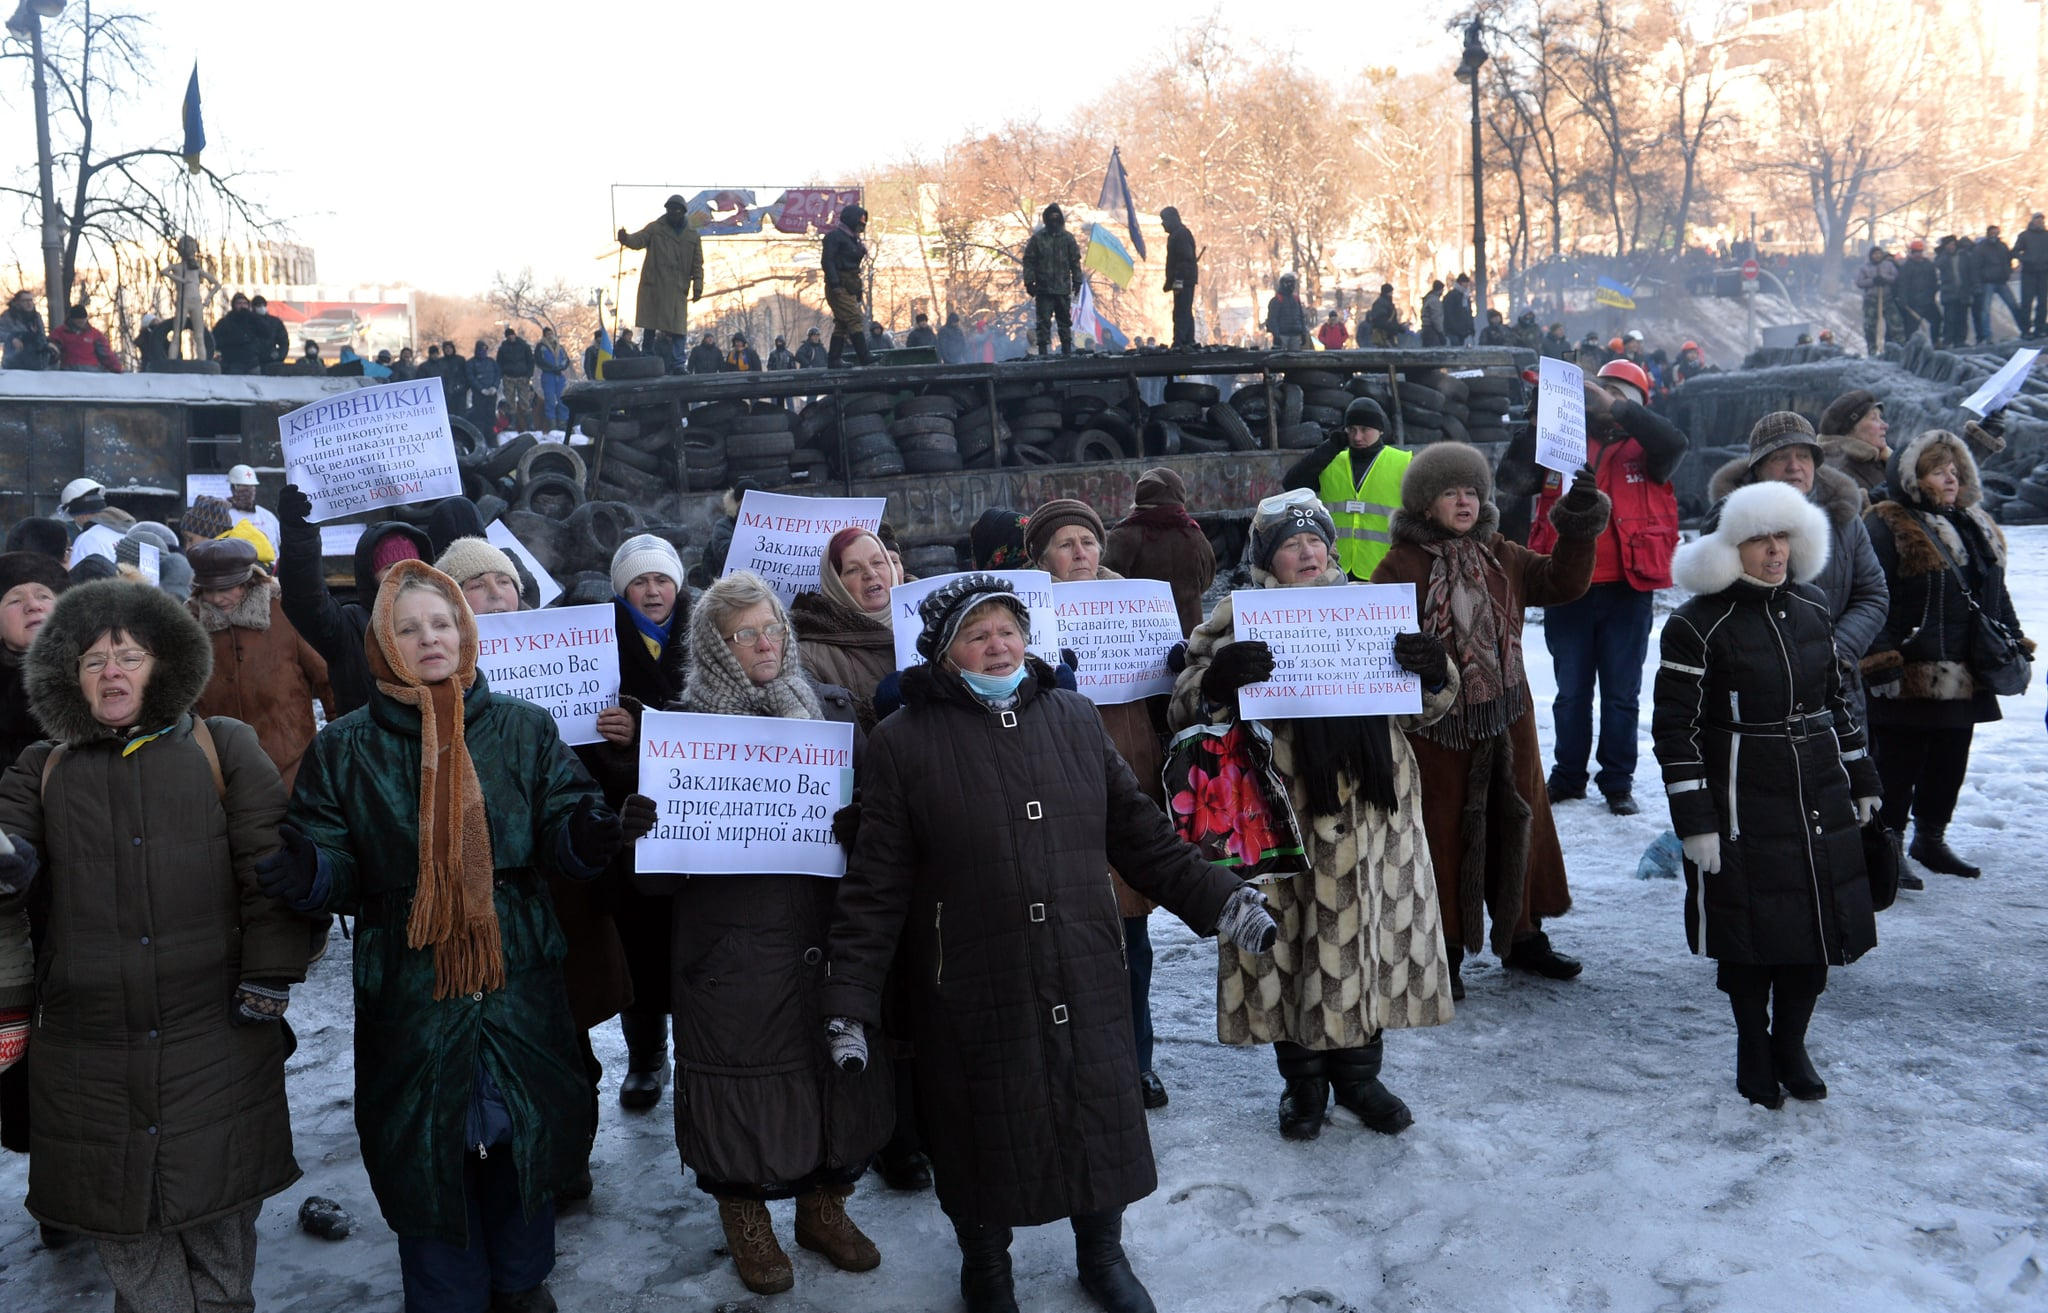 Women gathered with signs asking the police to join the protest.